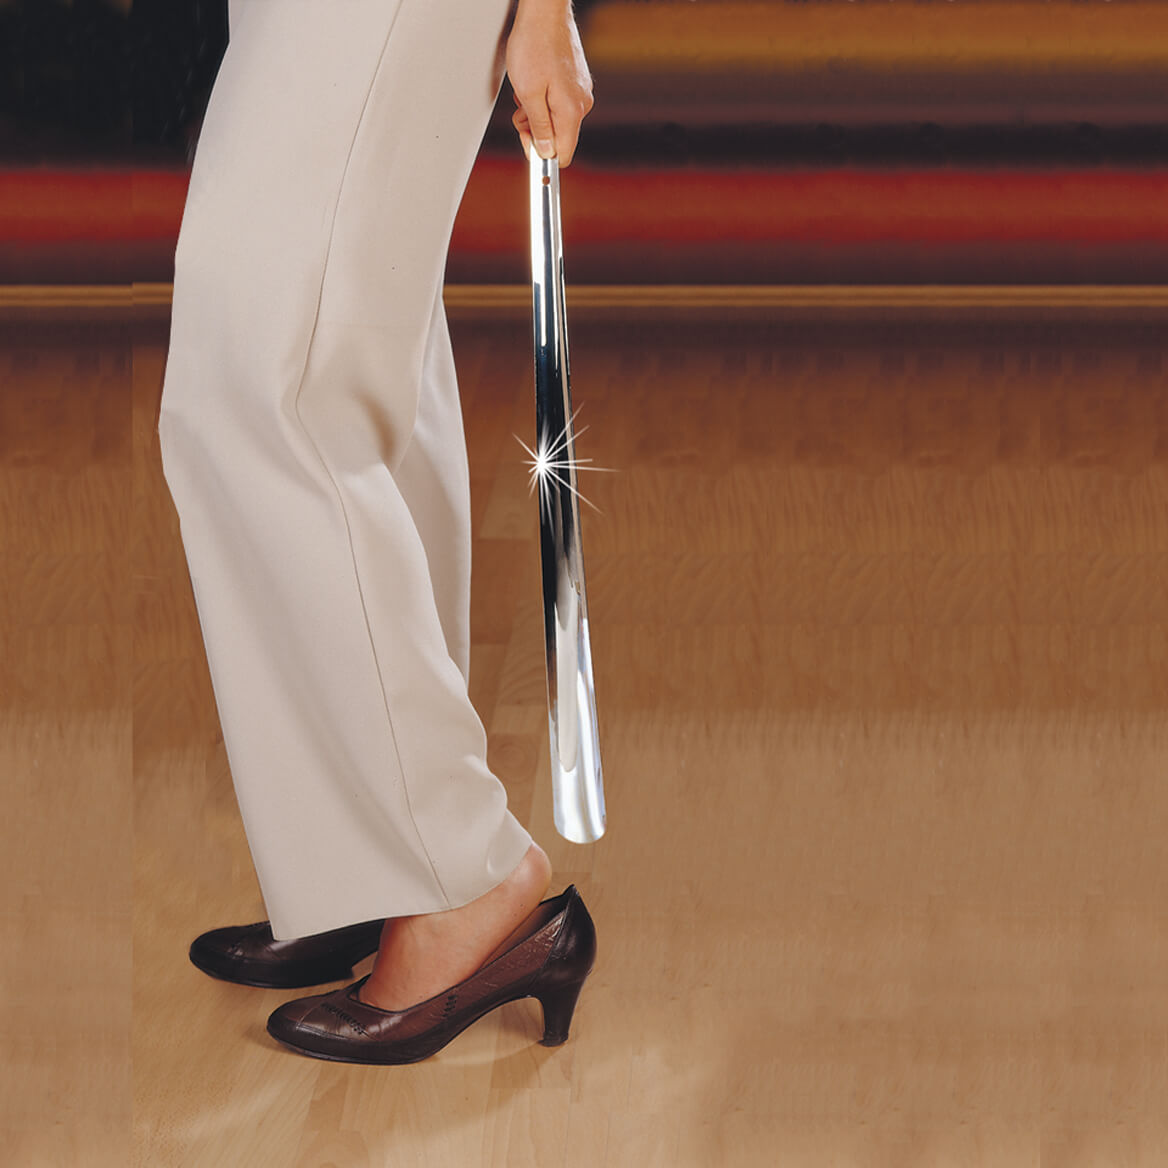 Extra Long Shoe Horn-310268